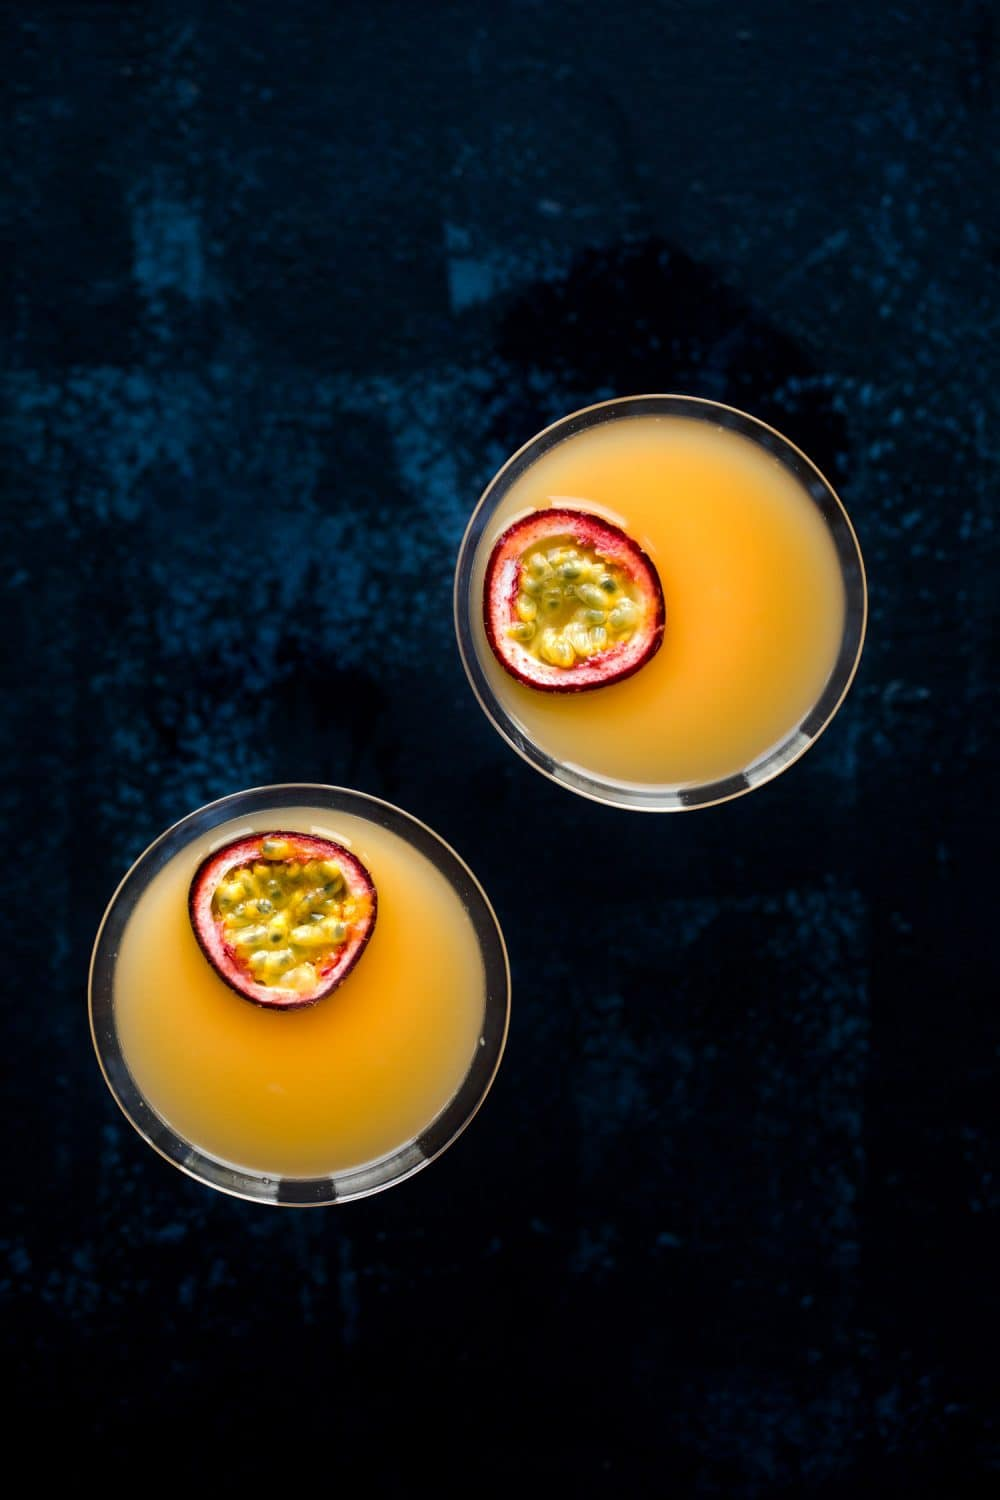 Overhead view of two pornstar martini cocktails with passion fruit slices floating on top.